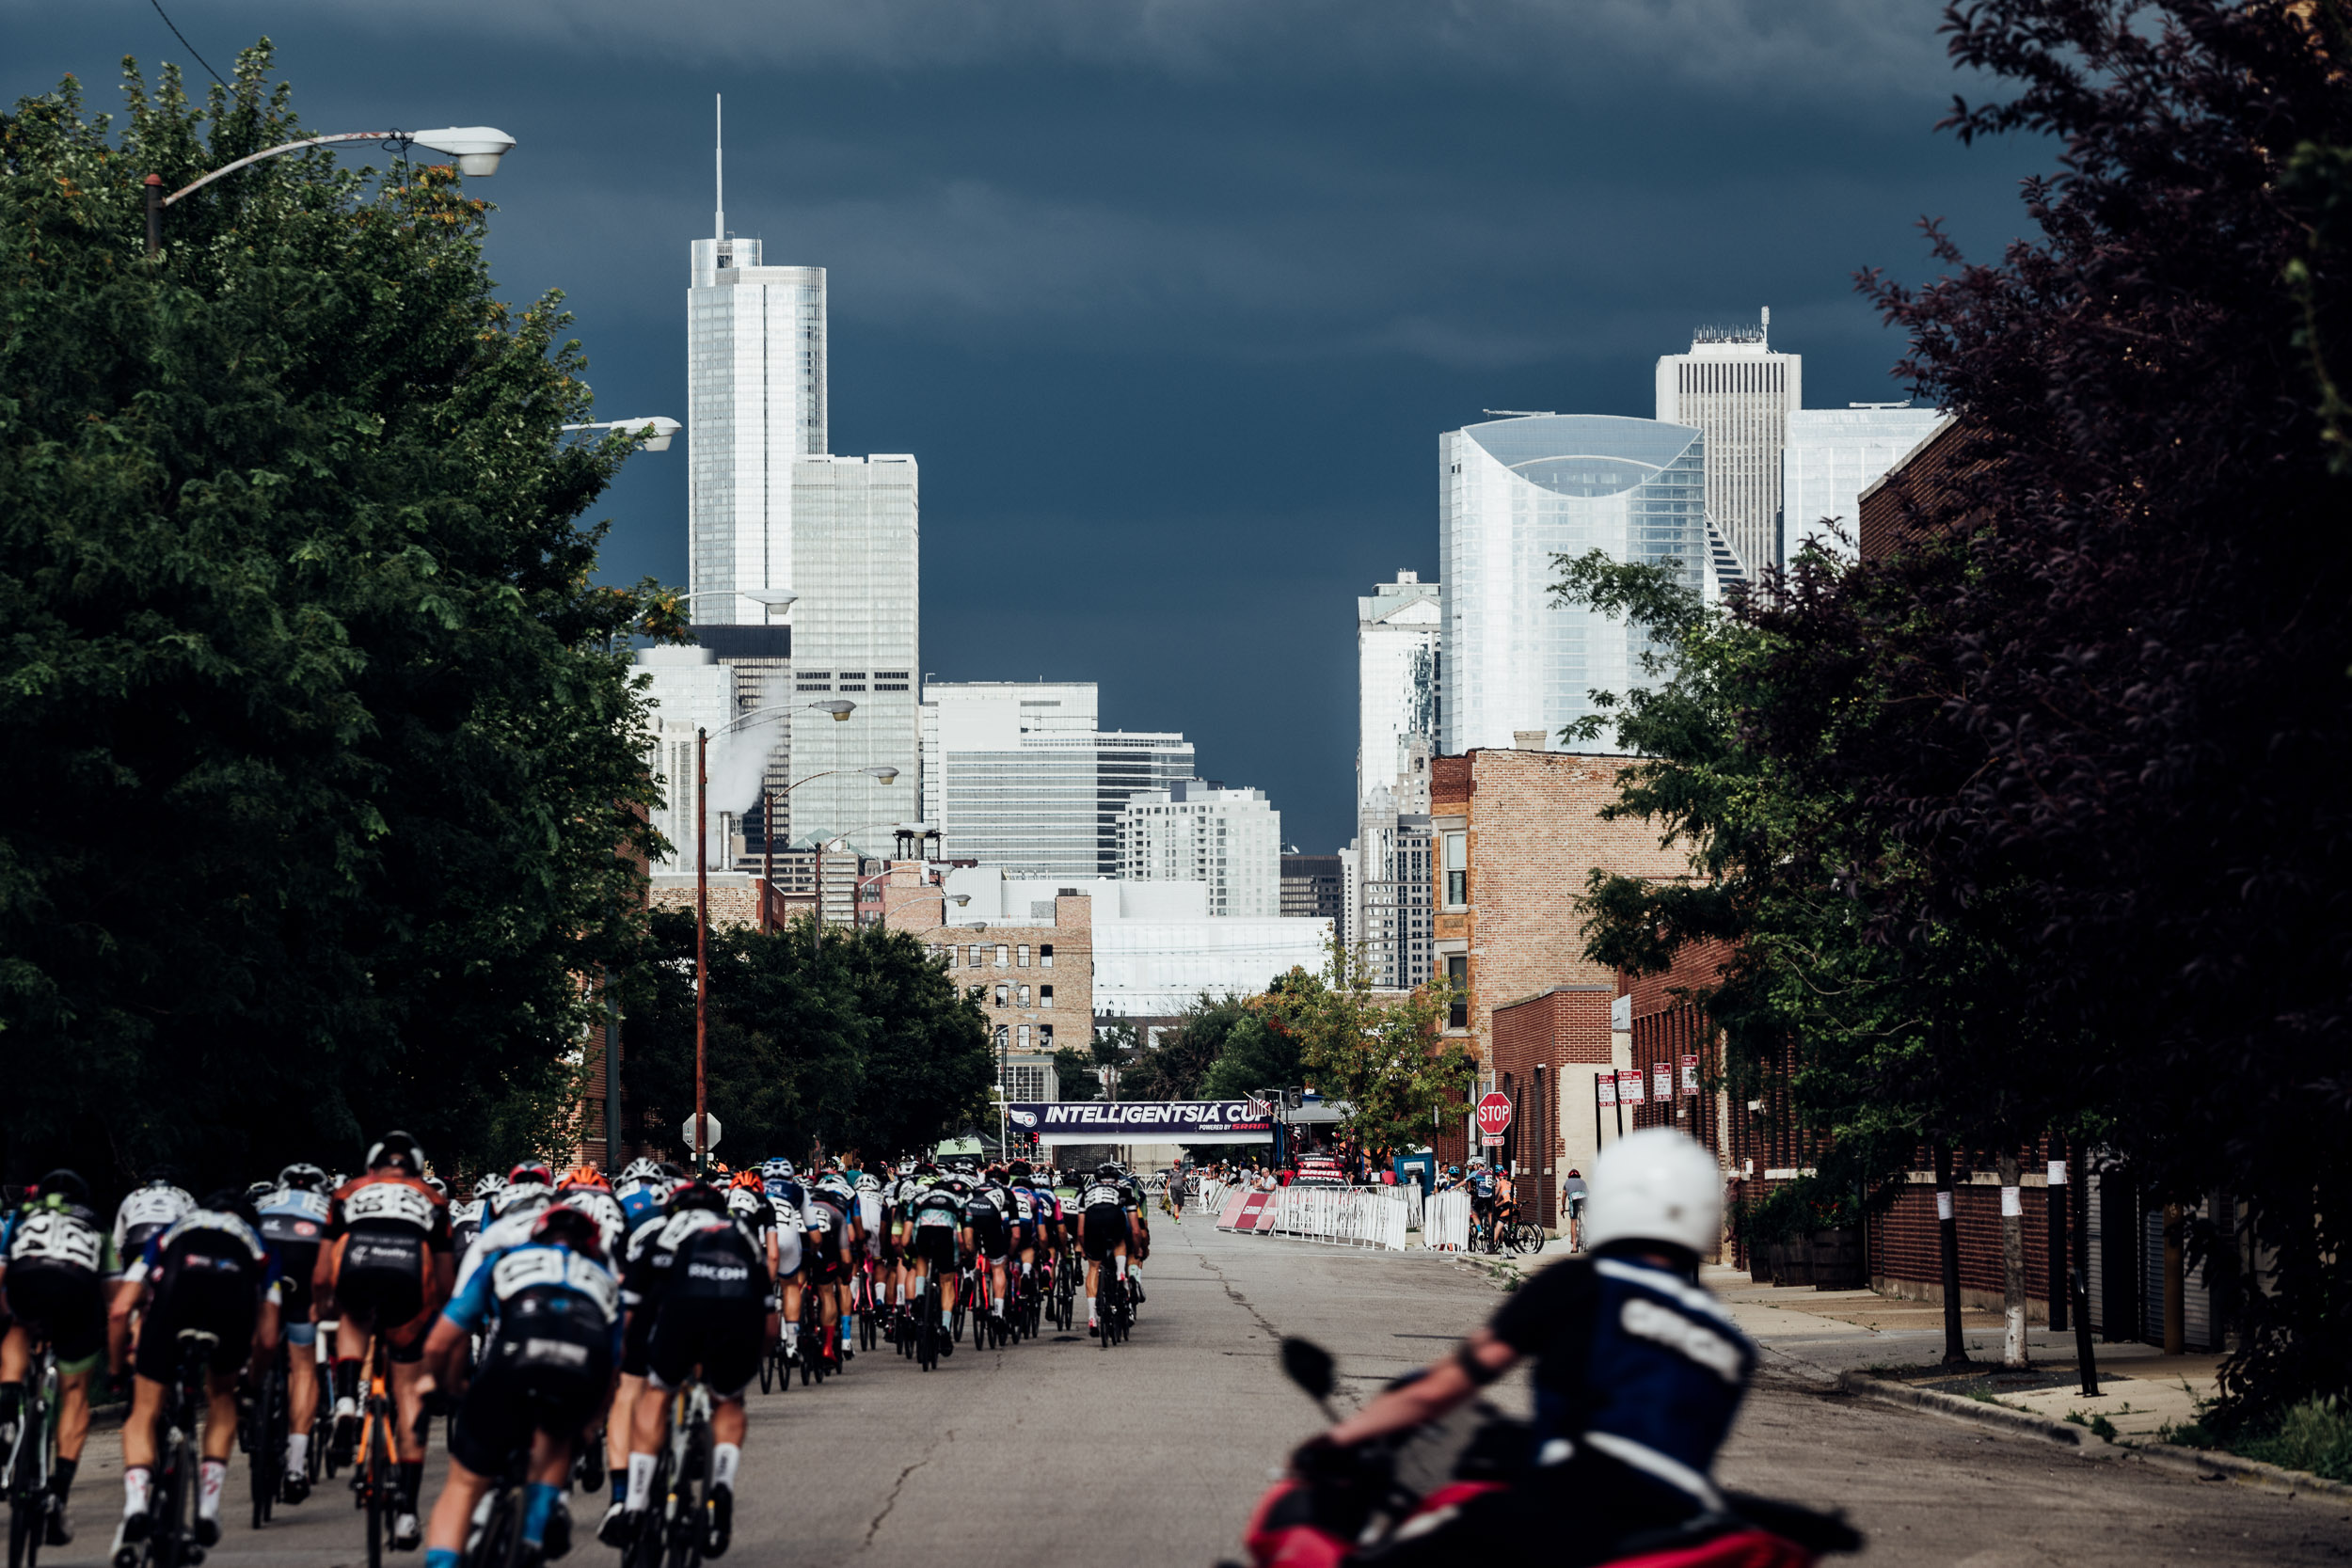 Those dark clouds on the horizon? They're representative of the challenges the sport. (the actual photo is from our  Intelligentsia Cup feature )